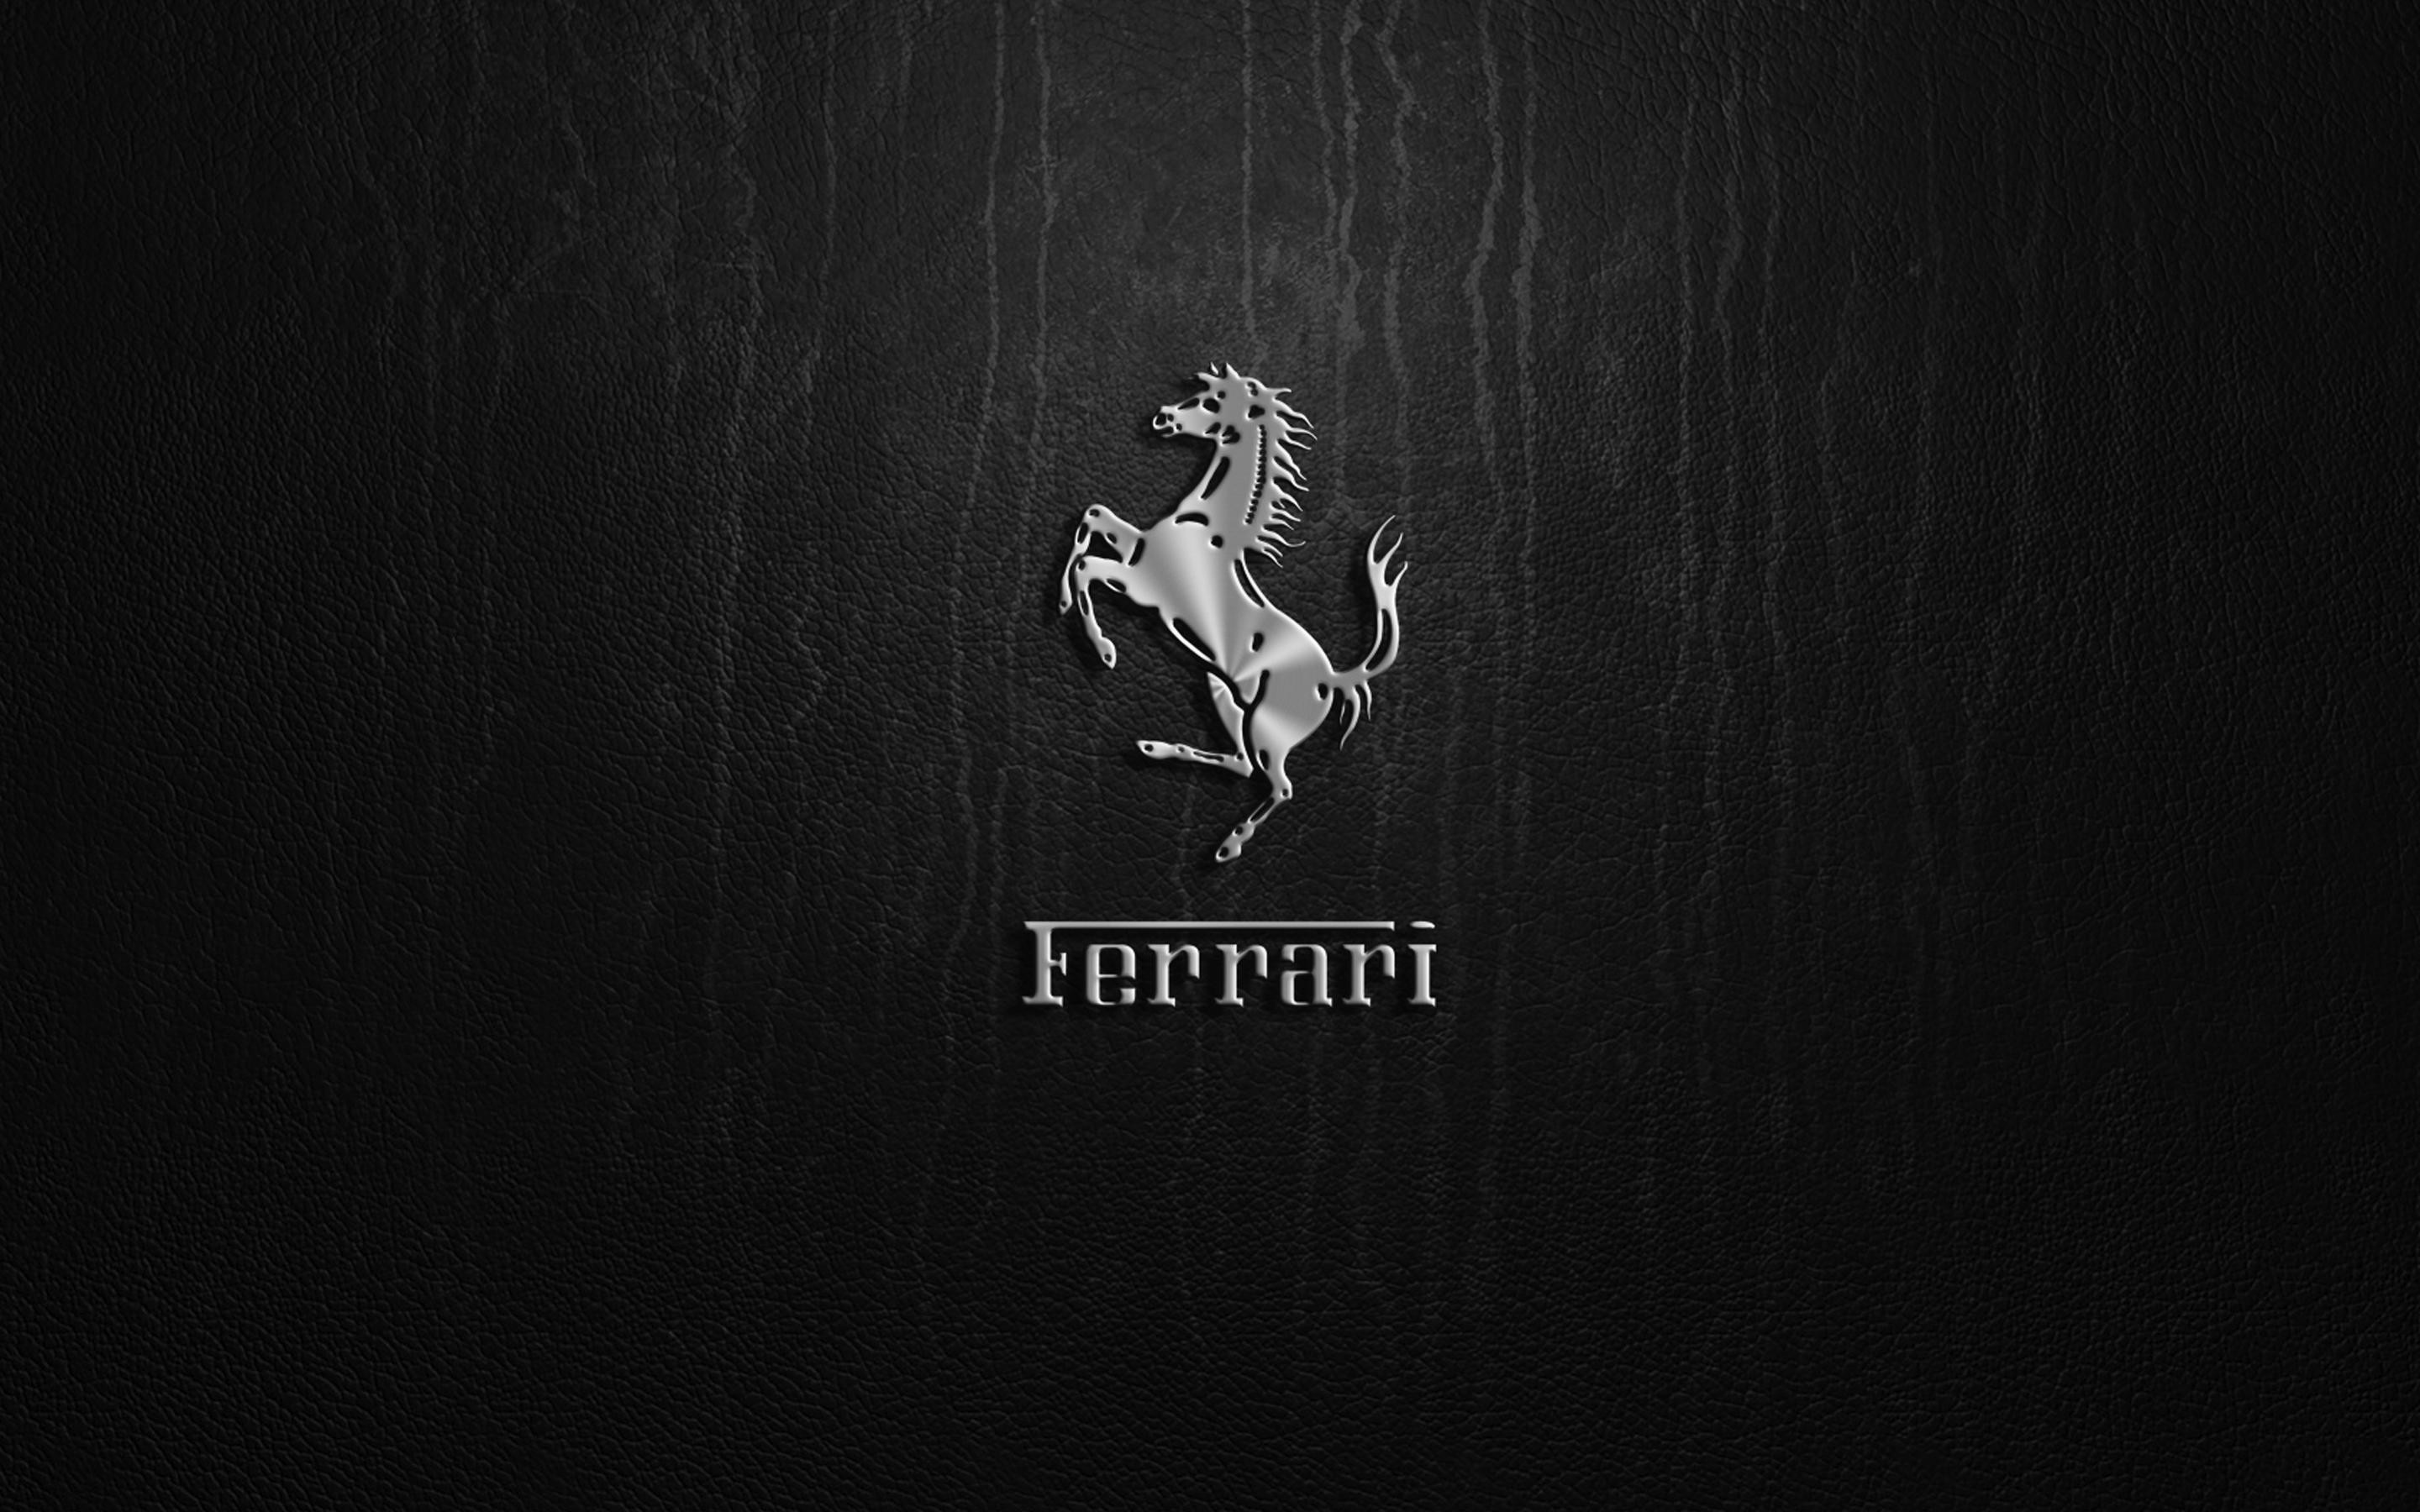 2880x1800 Ferrari Logo Wallpapers